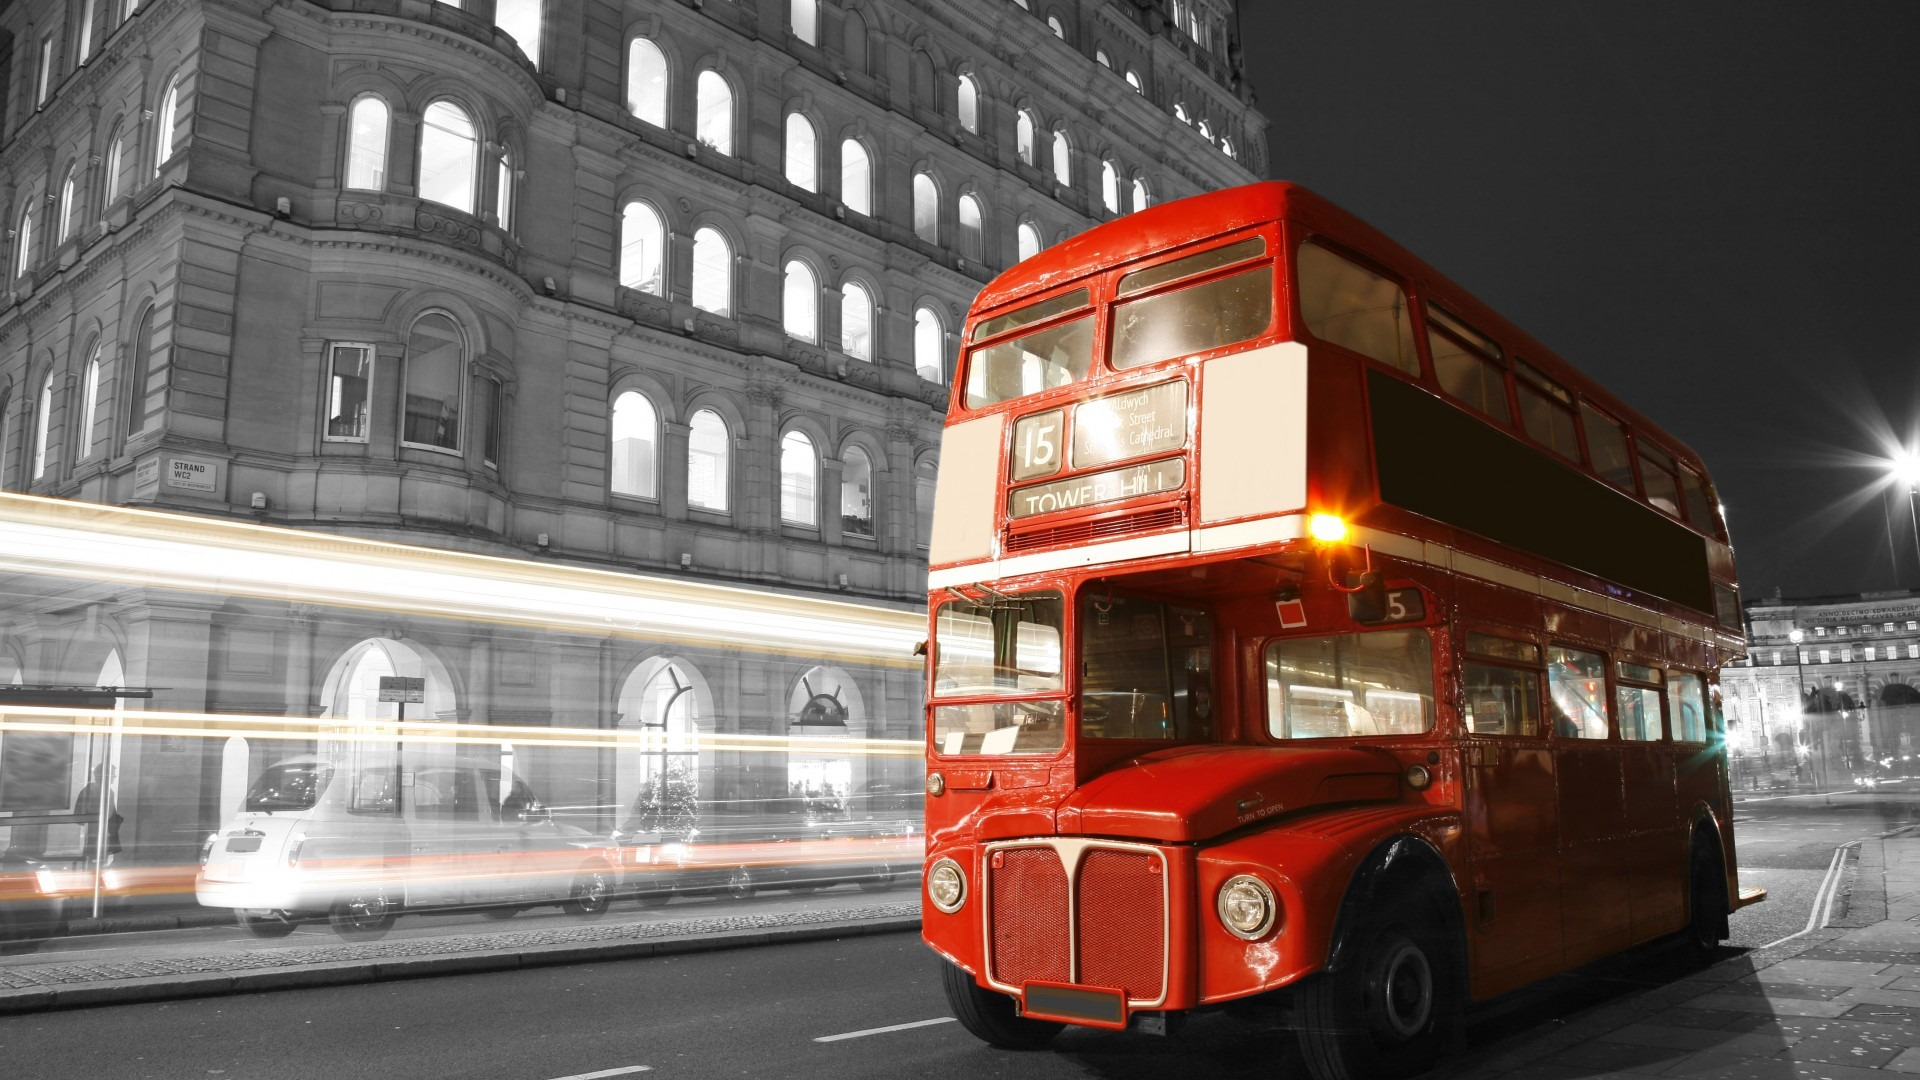 London England Iphone Wallpaper 47 Most Beautiful London Wallpapers In Hd For Free Download